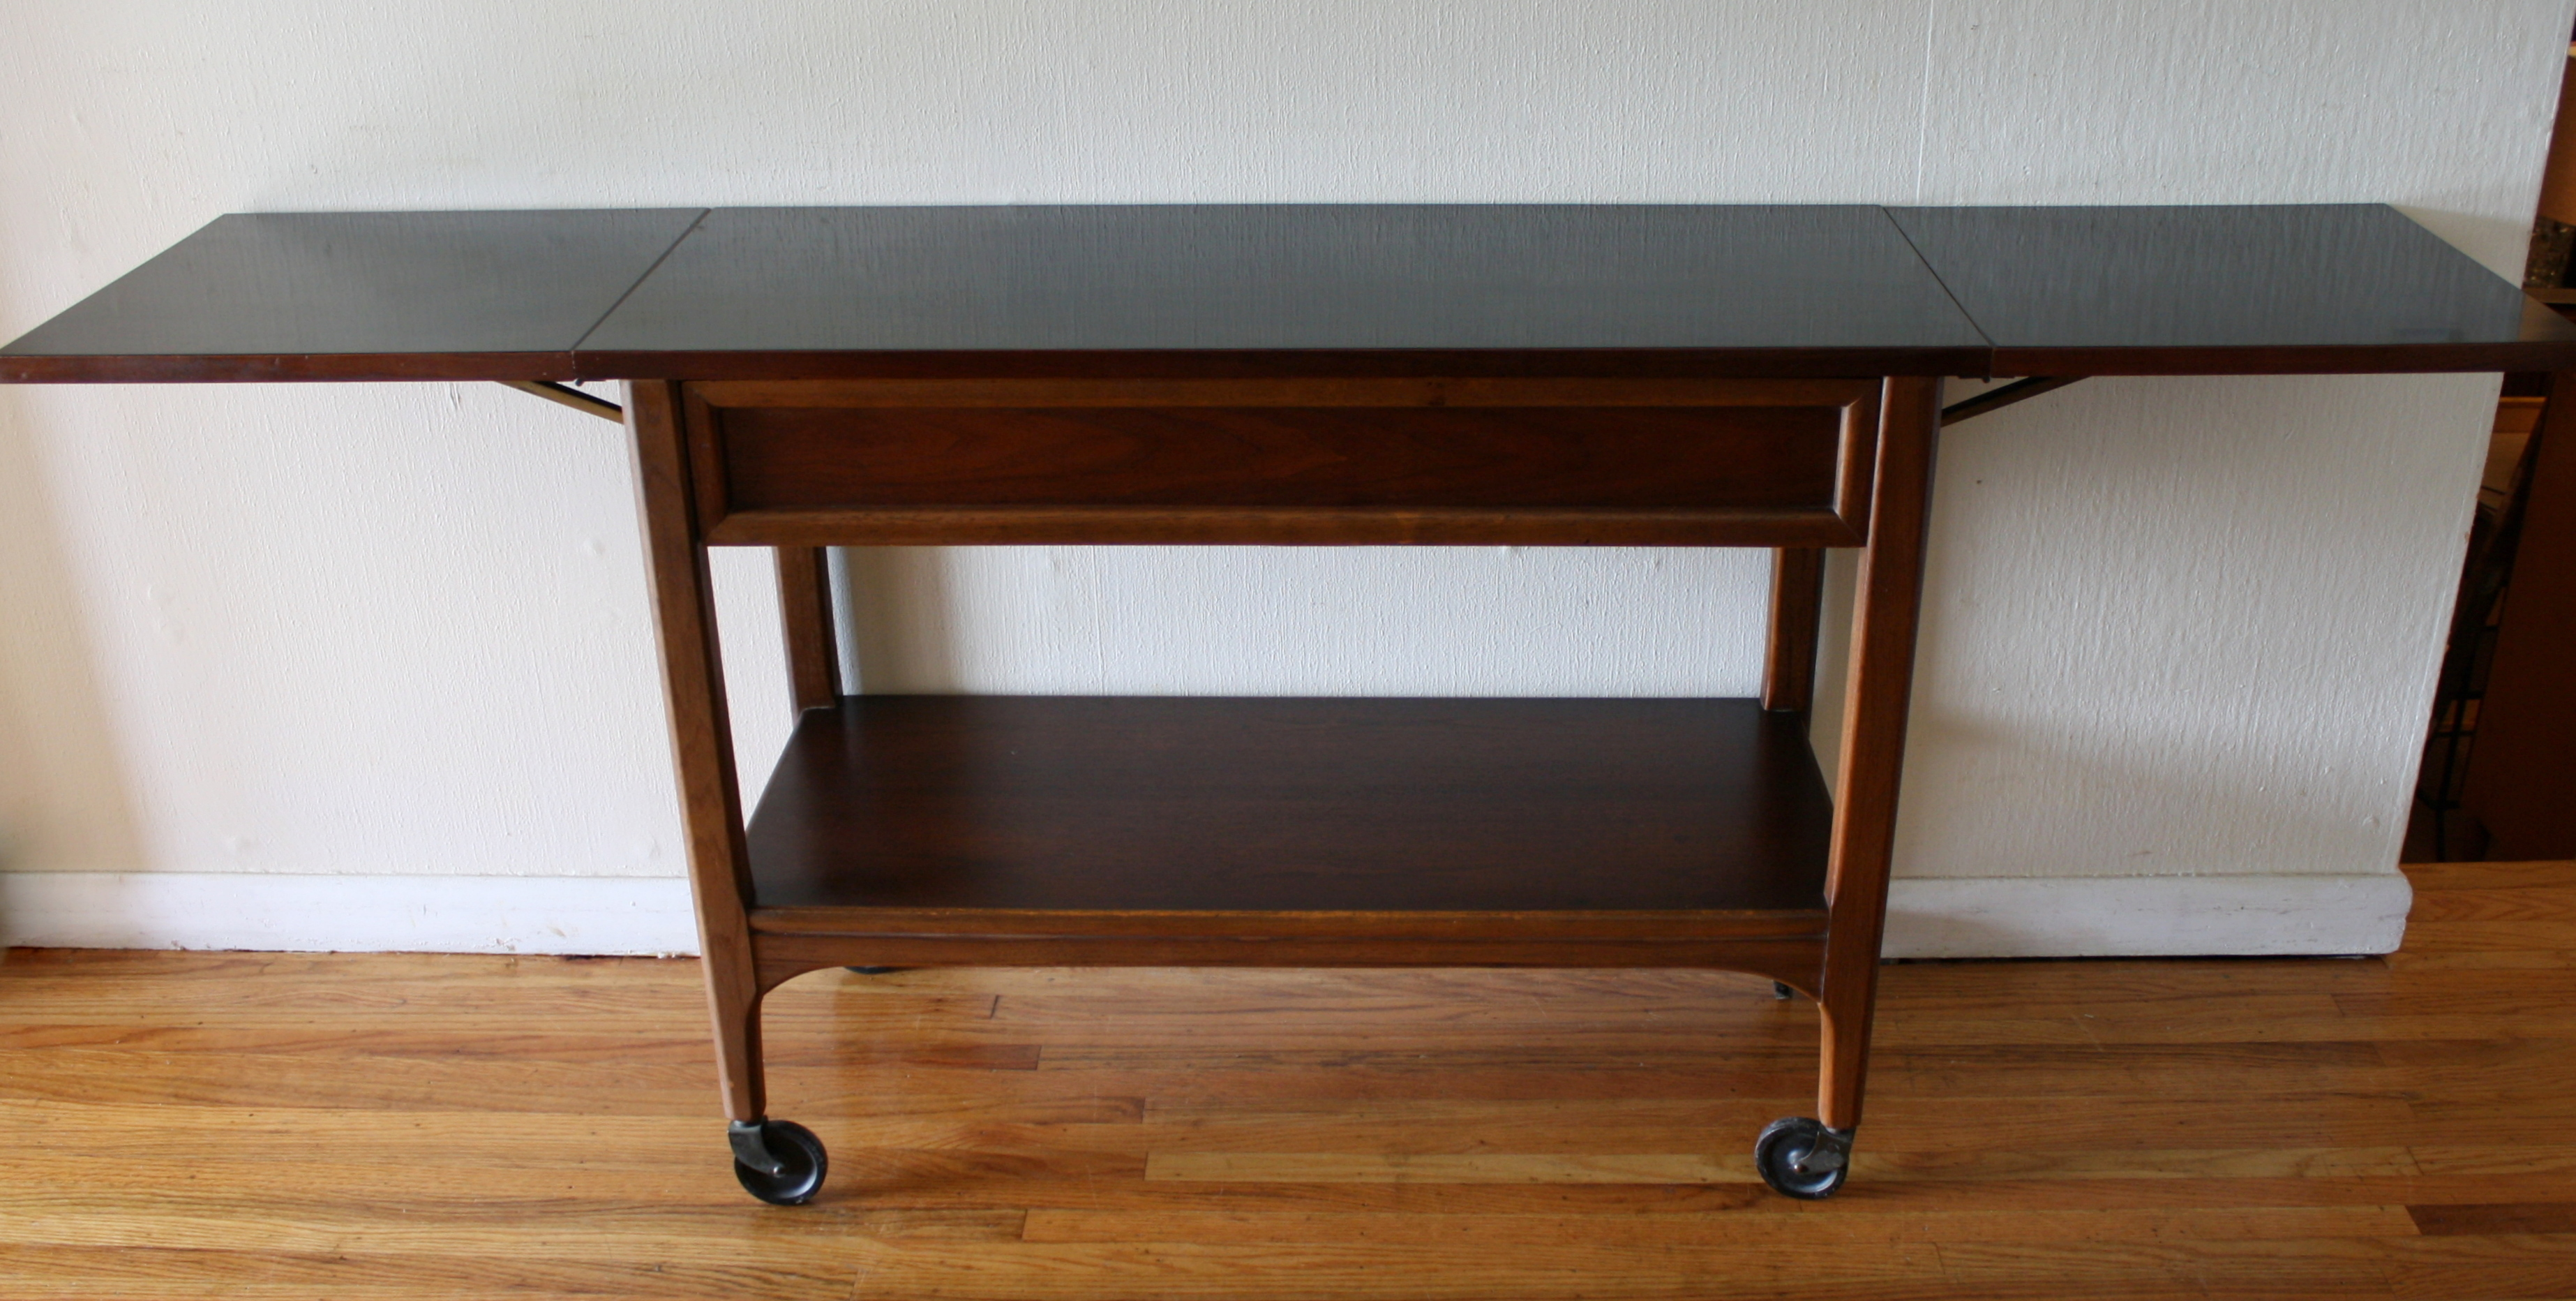 vintage lane sofa table how to fold click clack bed mid century modern console by picked